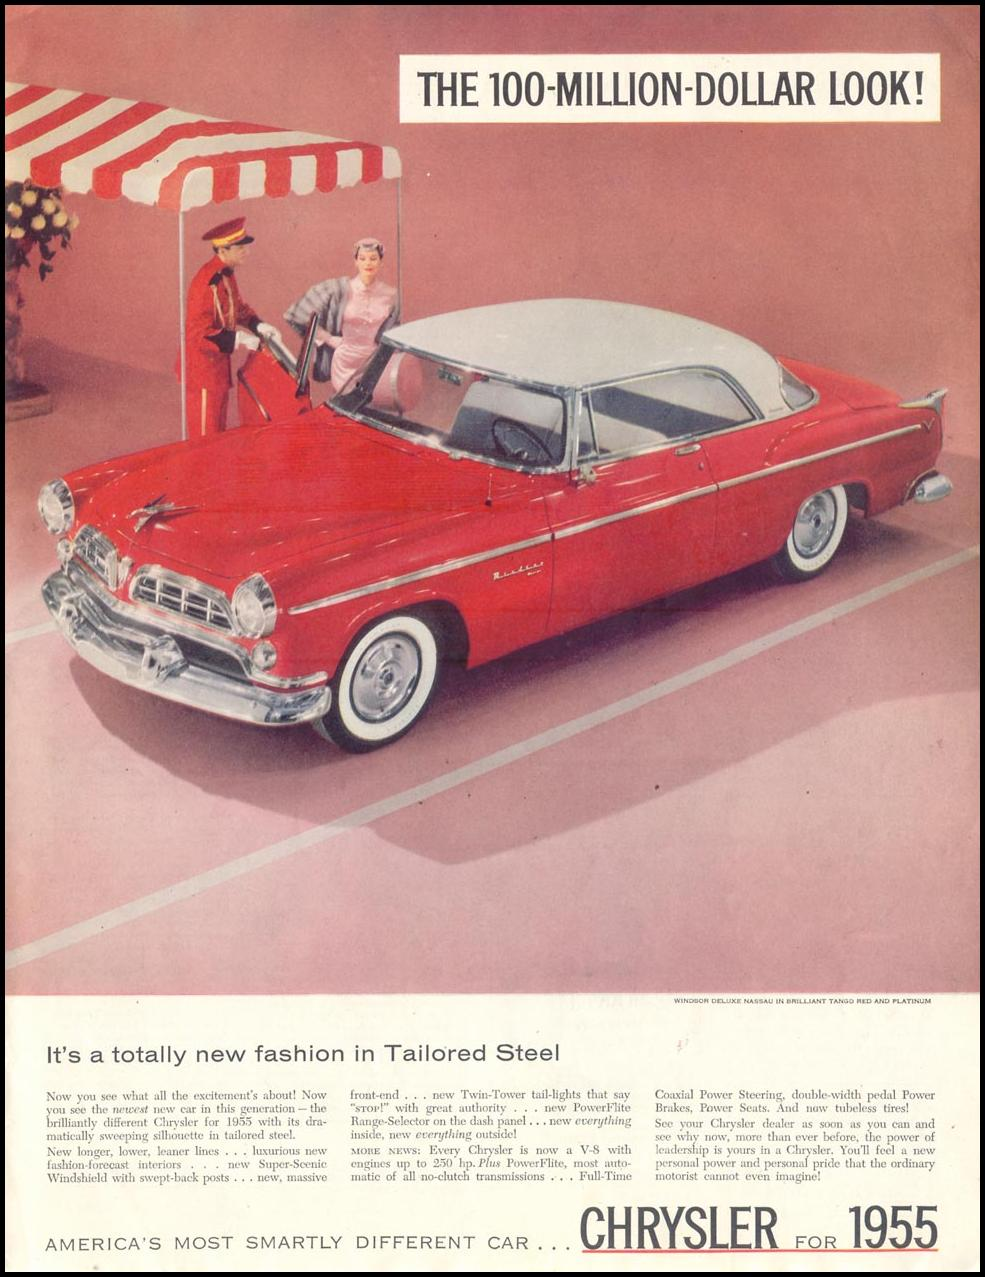 CHRYSLER AUTOMOBILES SATURDAY EVENING POST 01/08/1955 p. 5